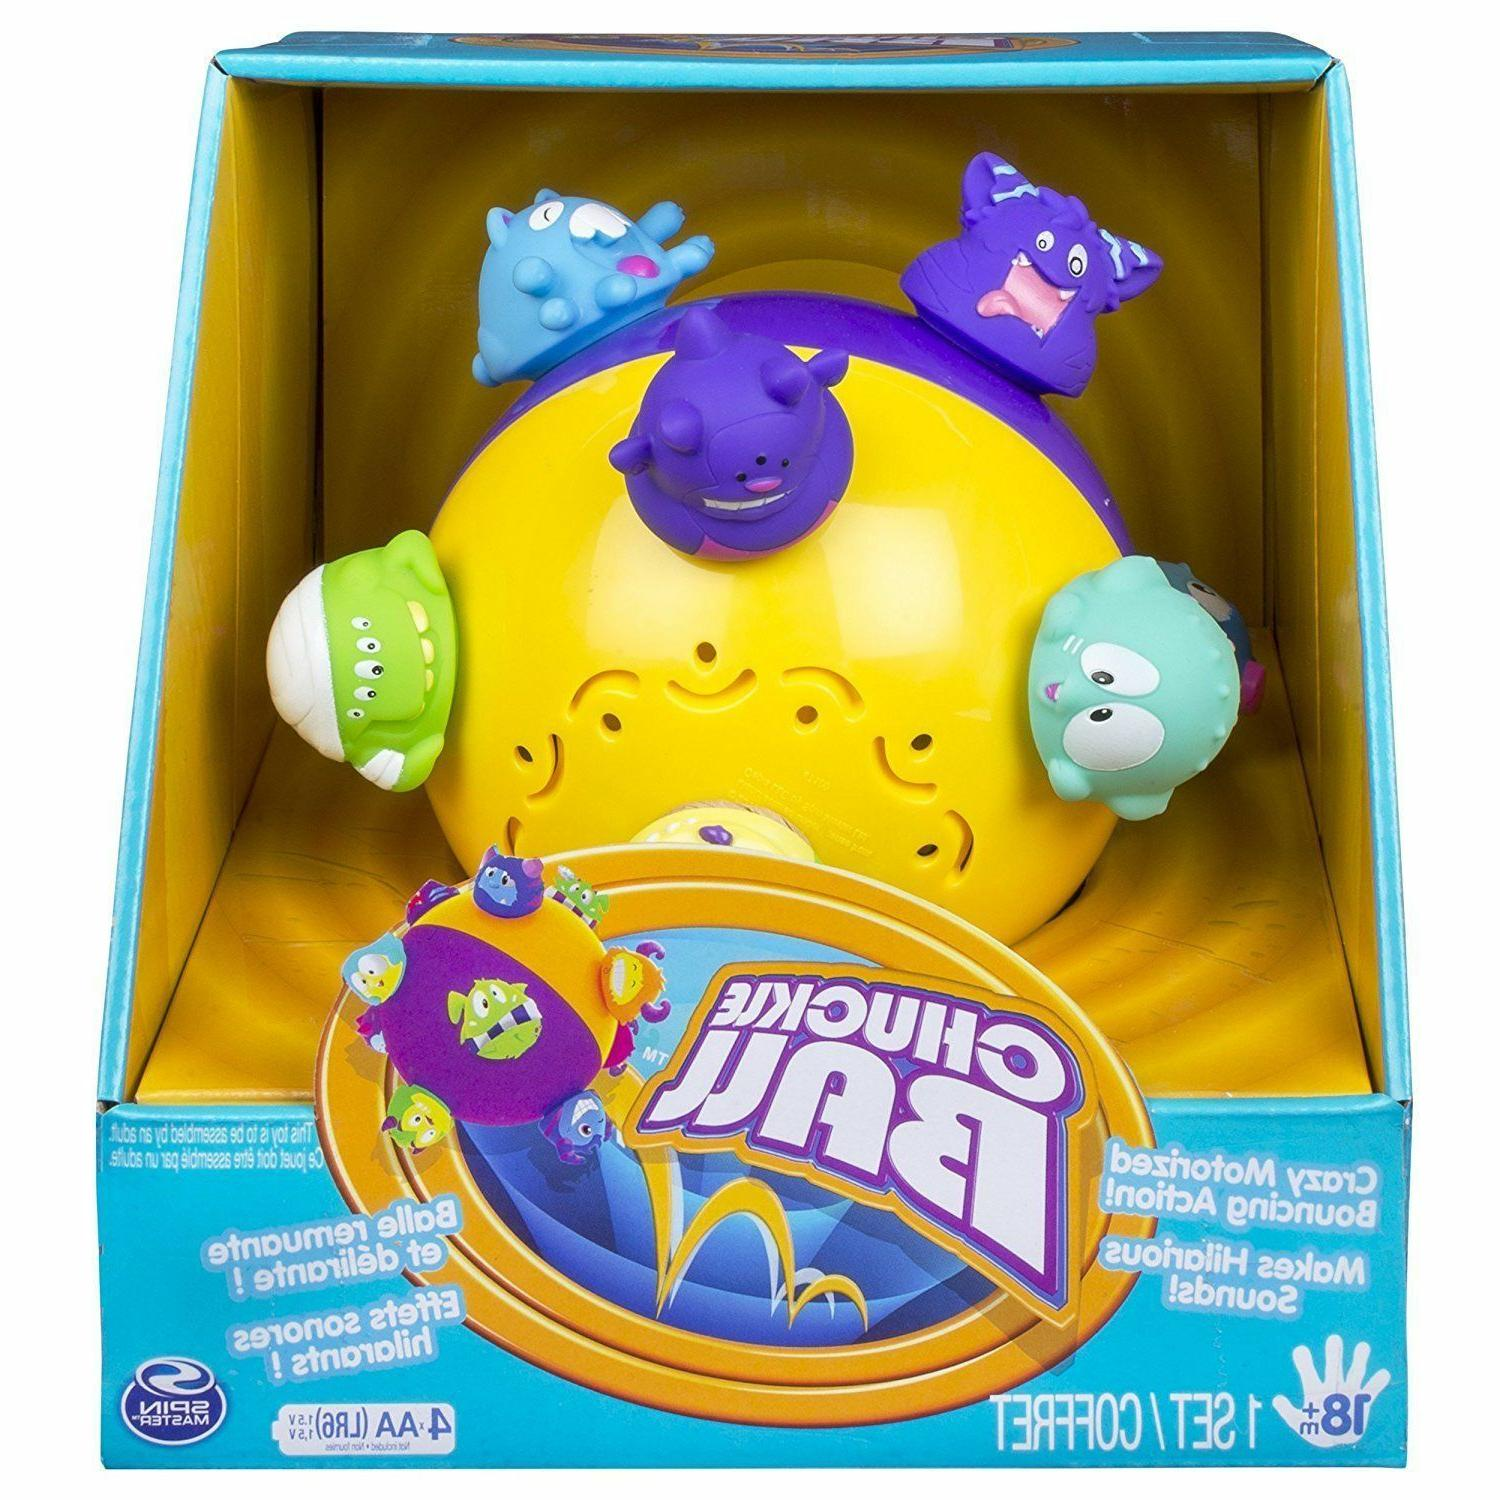 Chuckle Ball Bouncing Sensory Developmental Ball